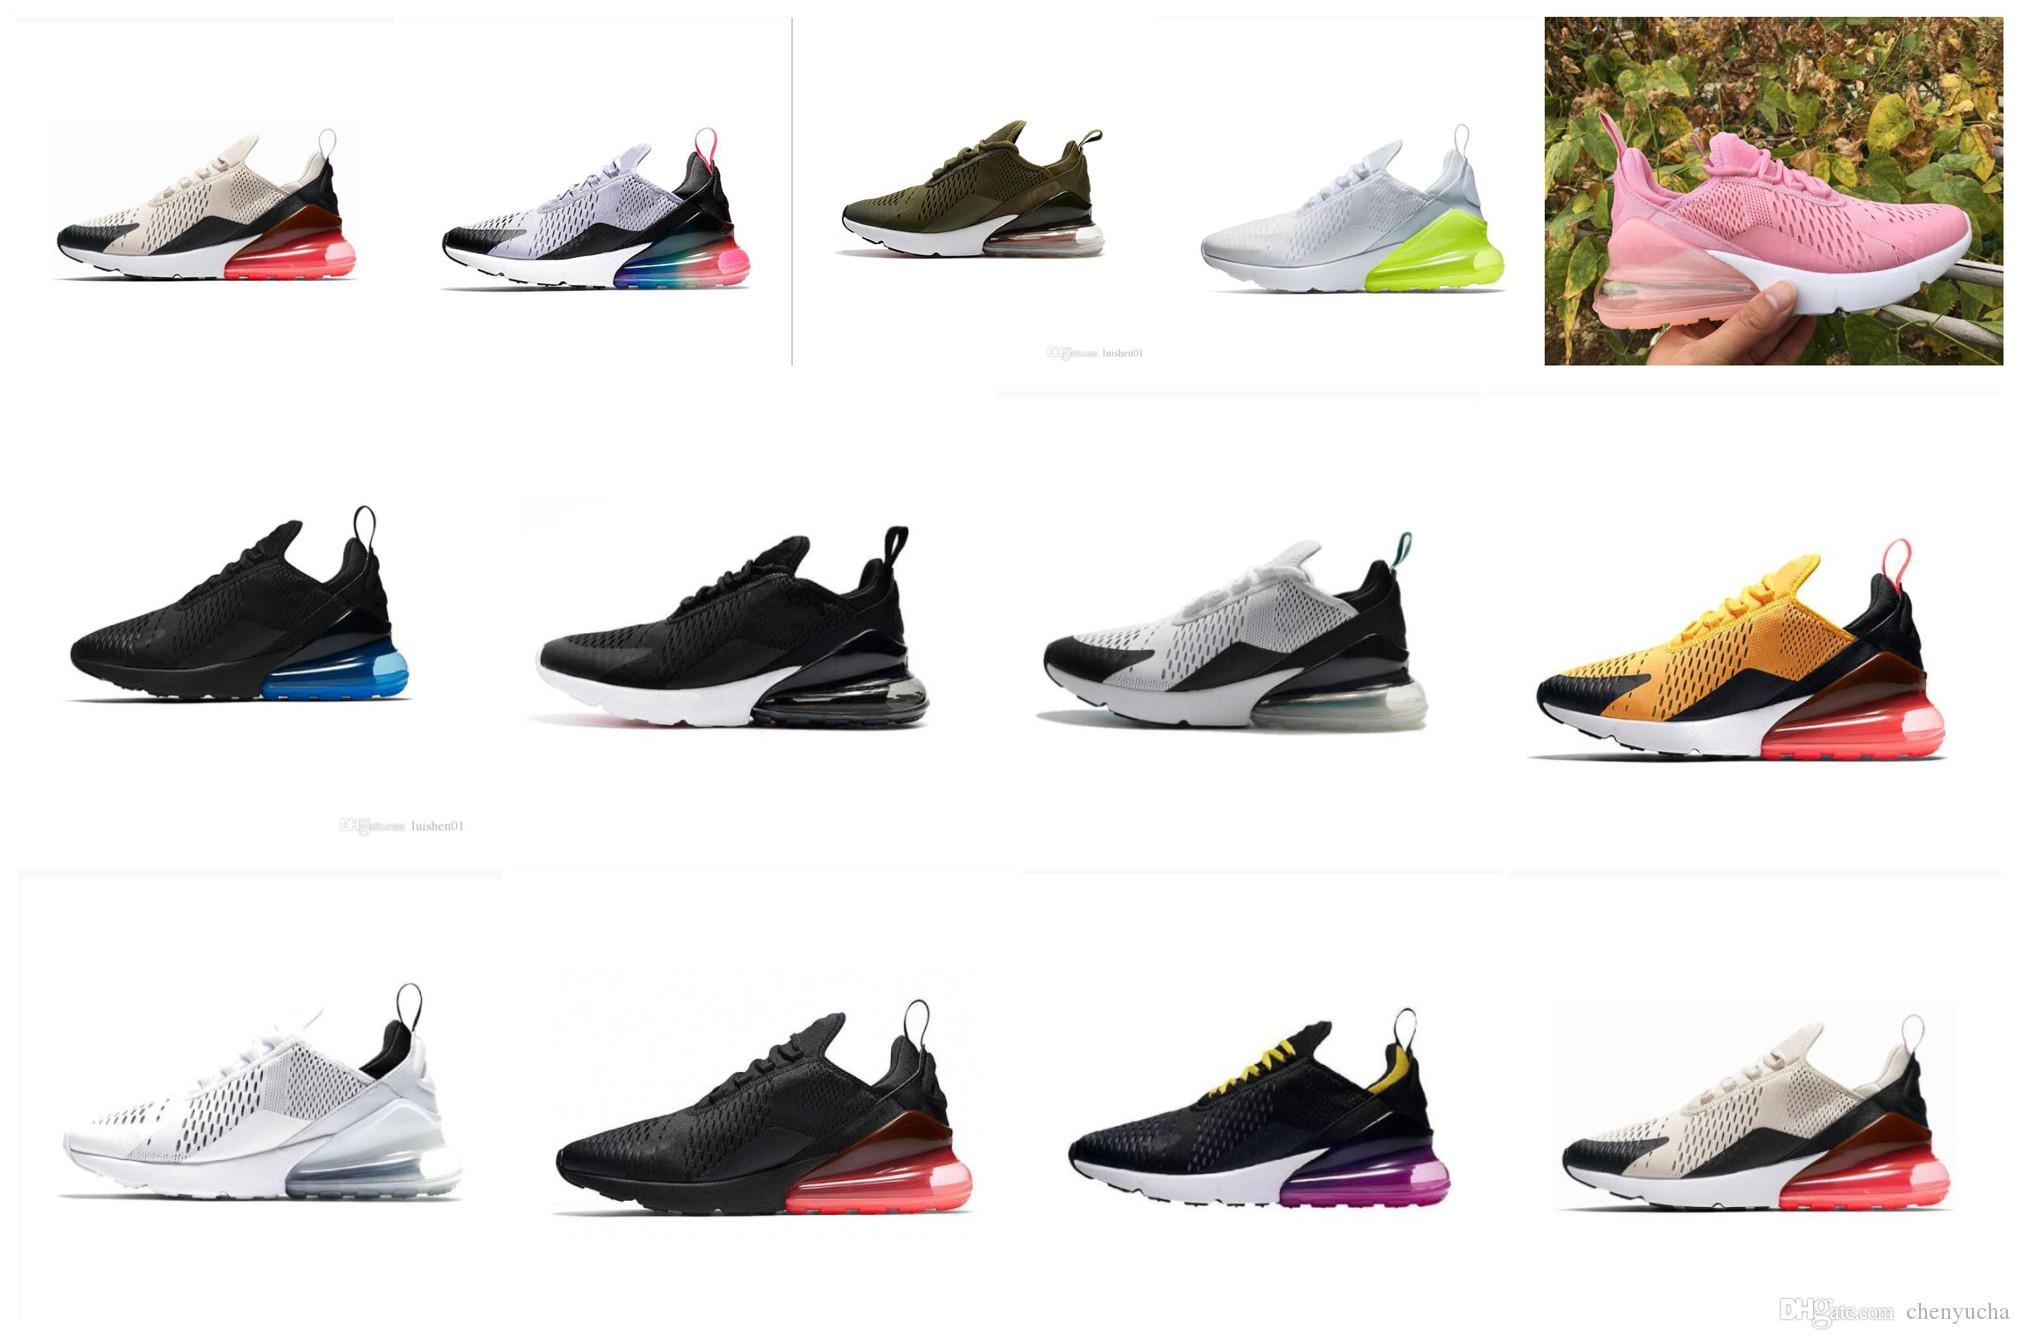 on sale 5299f 9daf4 Compre MAX Ventas 2019 Air Vapor 270 Hombres Mujeres Zapatos Para Correr Max  Flair Triple Negro 27C OG PRESTO AH8050 Racer Basketball TN Plus Chaussure  EE.